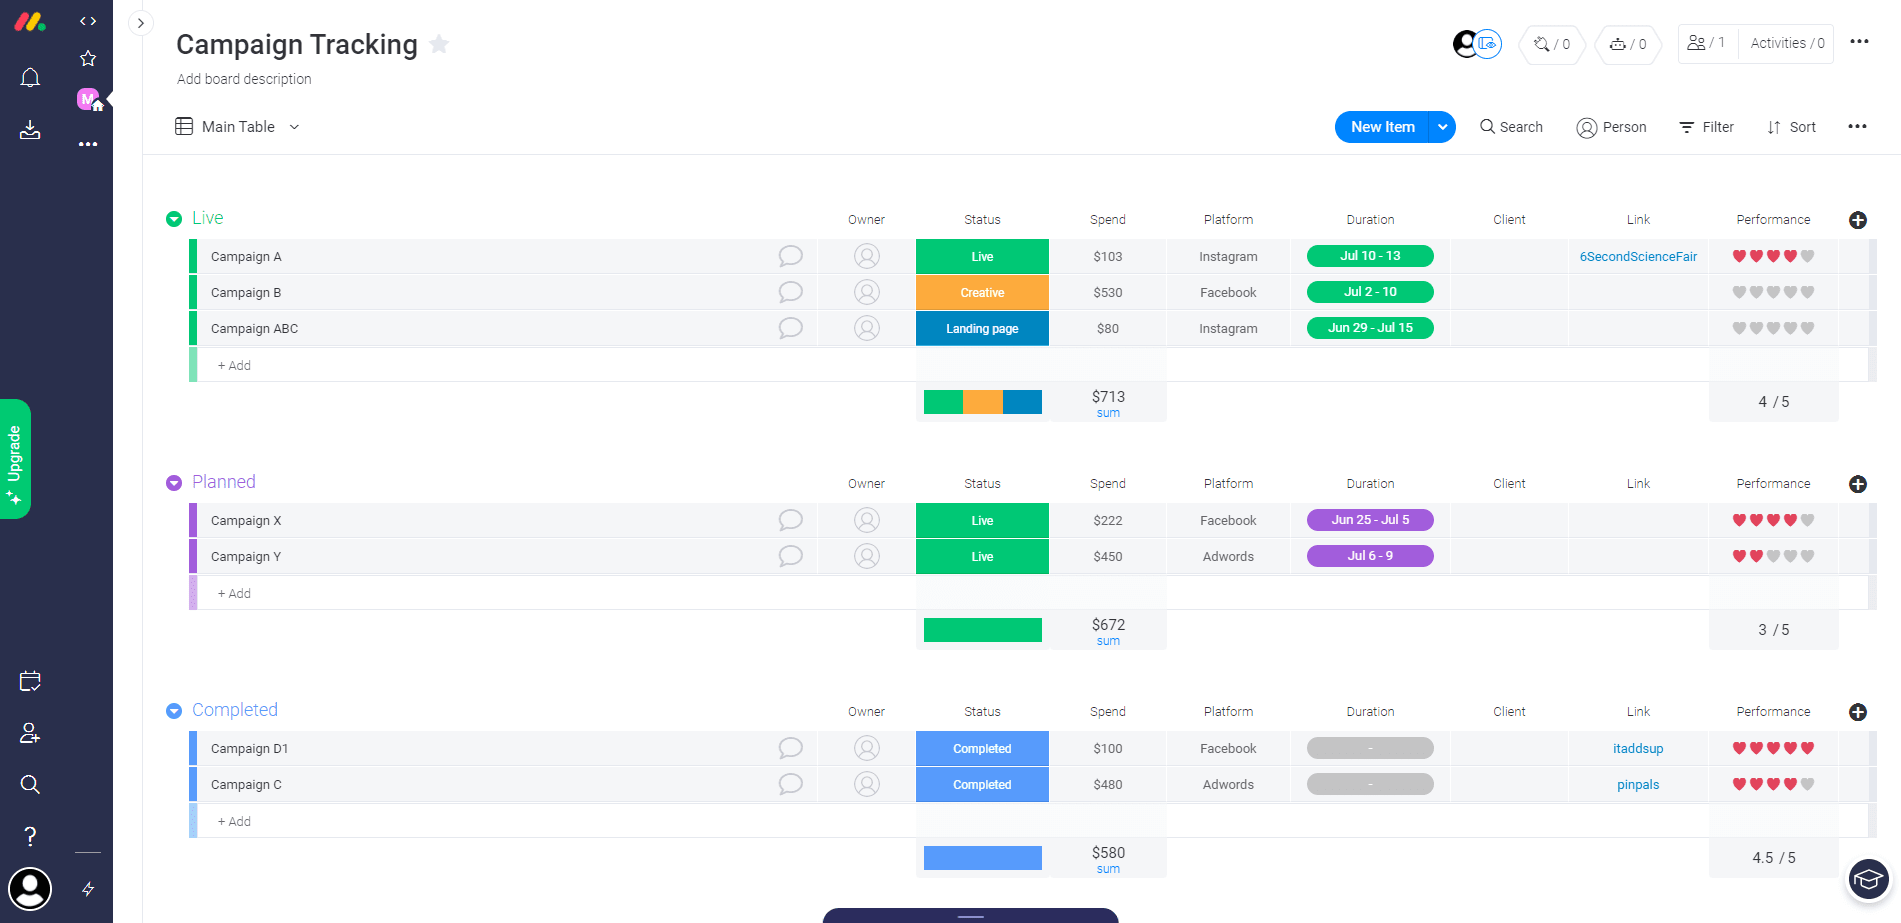 A sample campaign tracking from Monday.com.